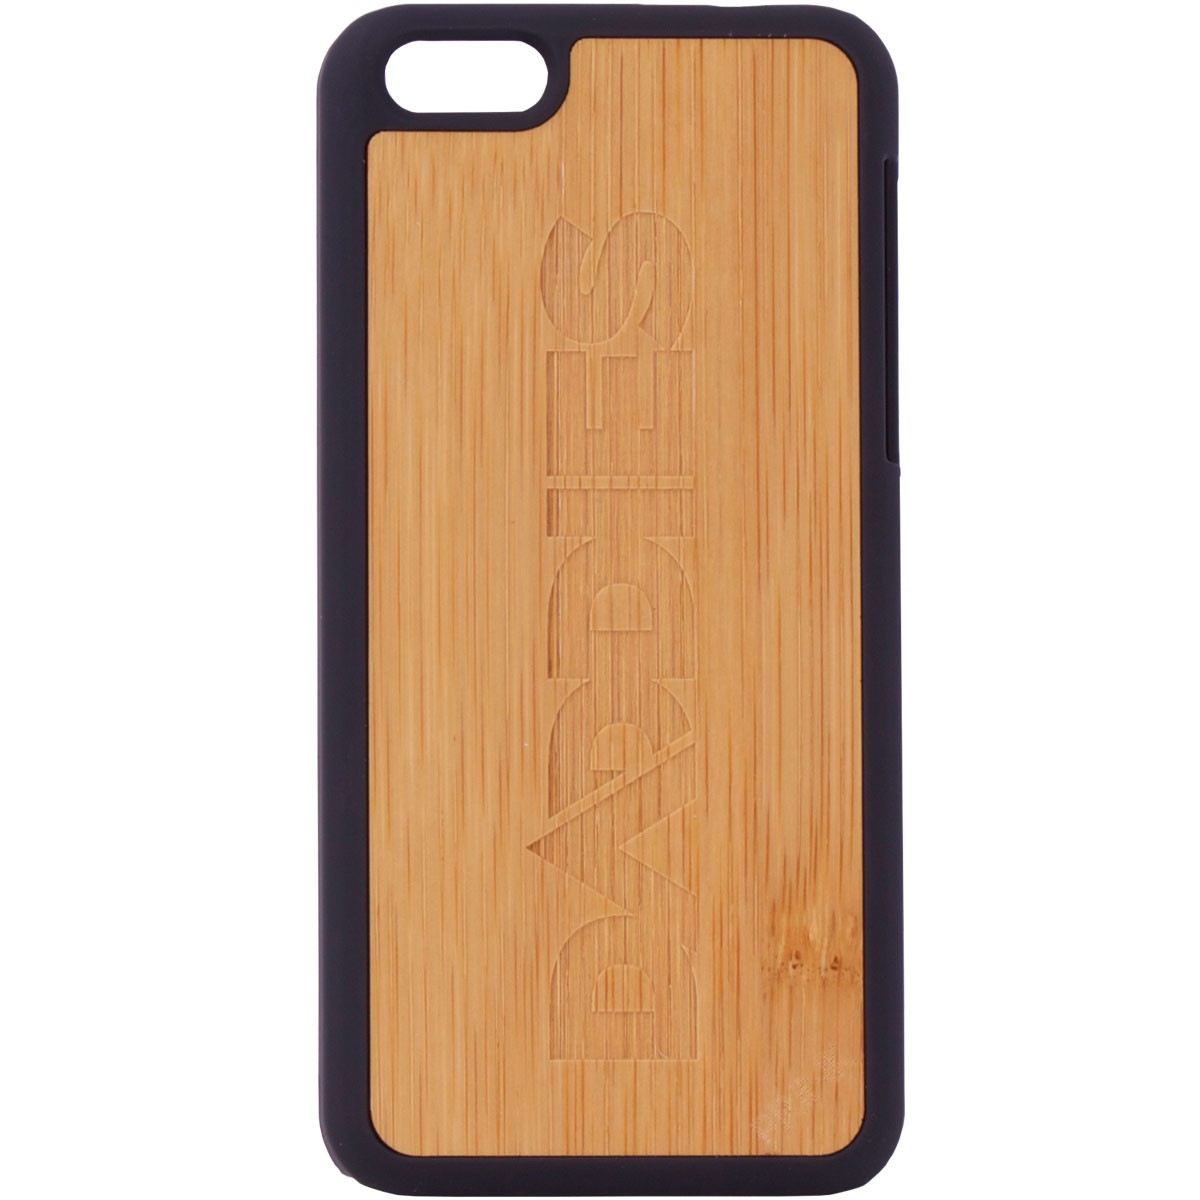 Daddies Board Shop iPhone 5c Hard Case - Bamboo